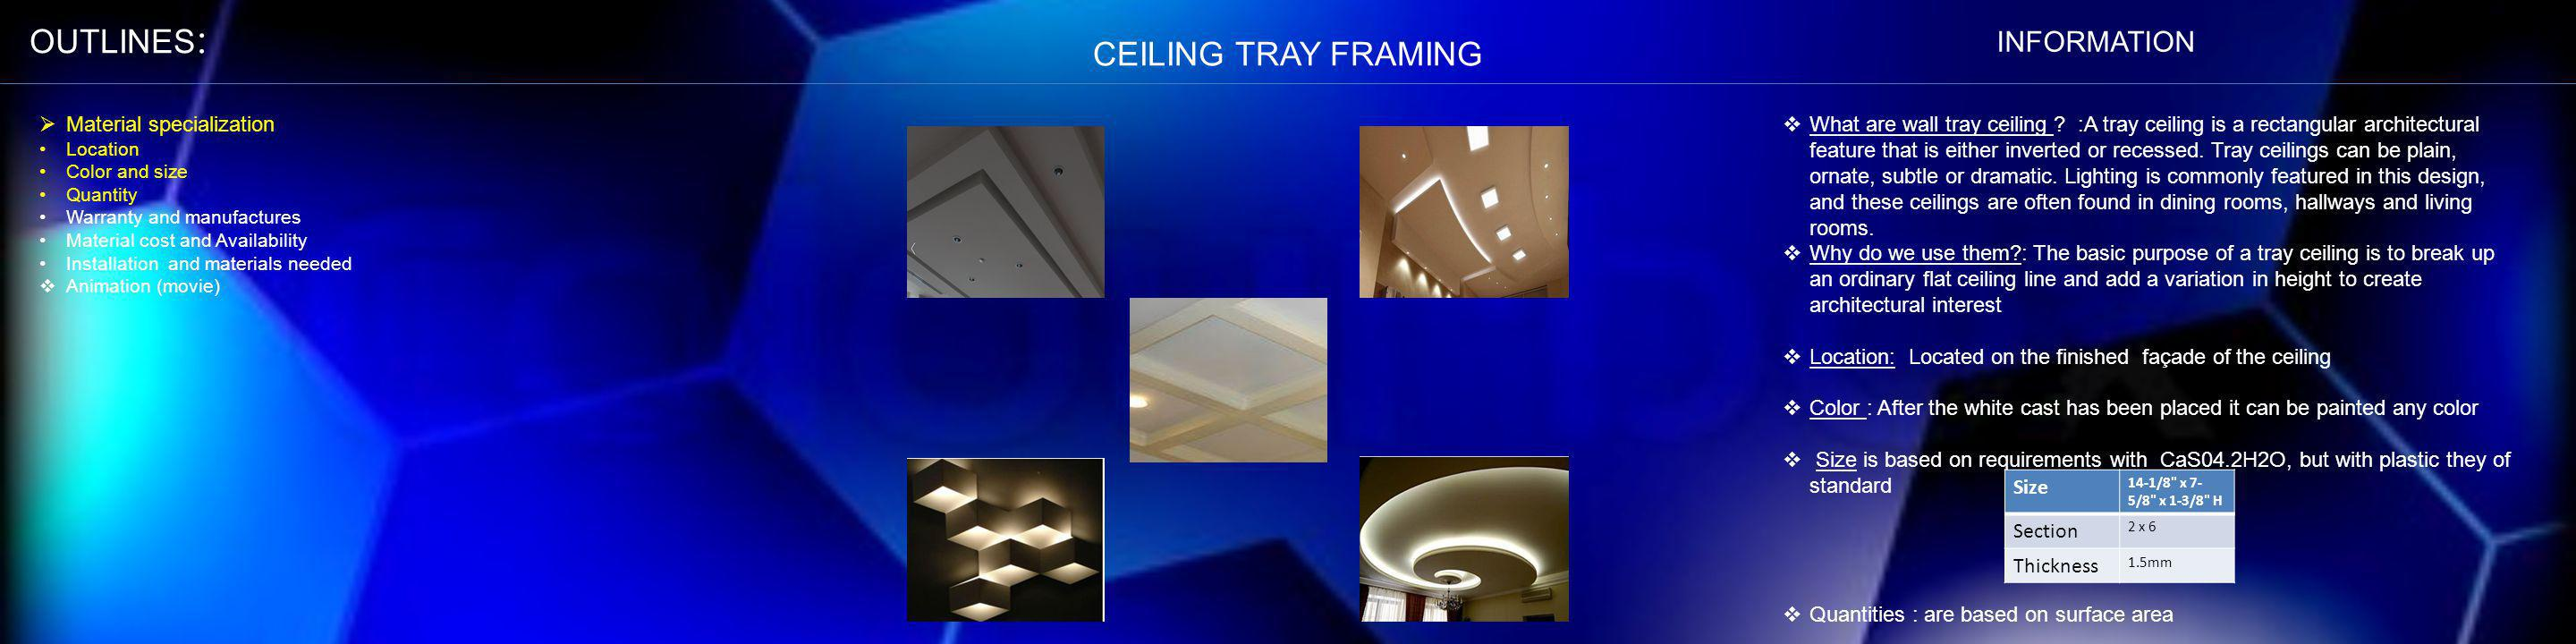 CEILING TRAY FRAMING Material specialization Location Color and size Quantity Warranty and manufactures Material cost and Availability Installation an